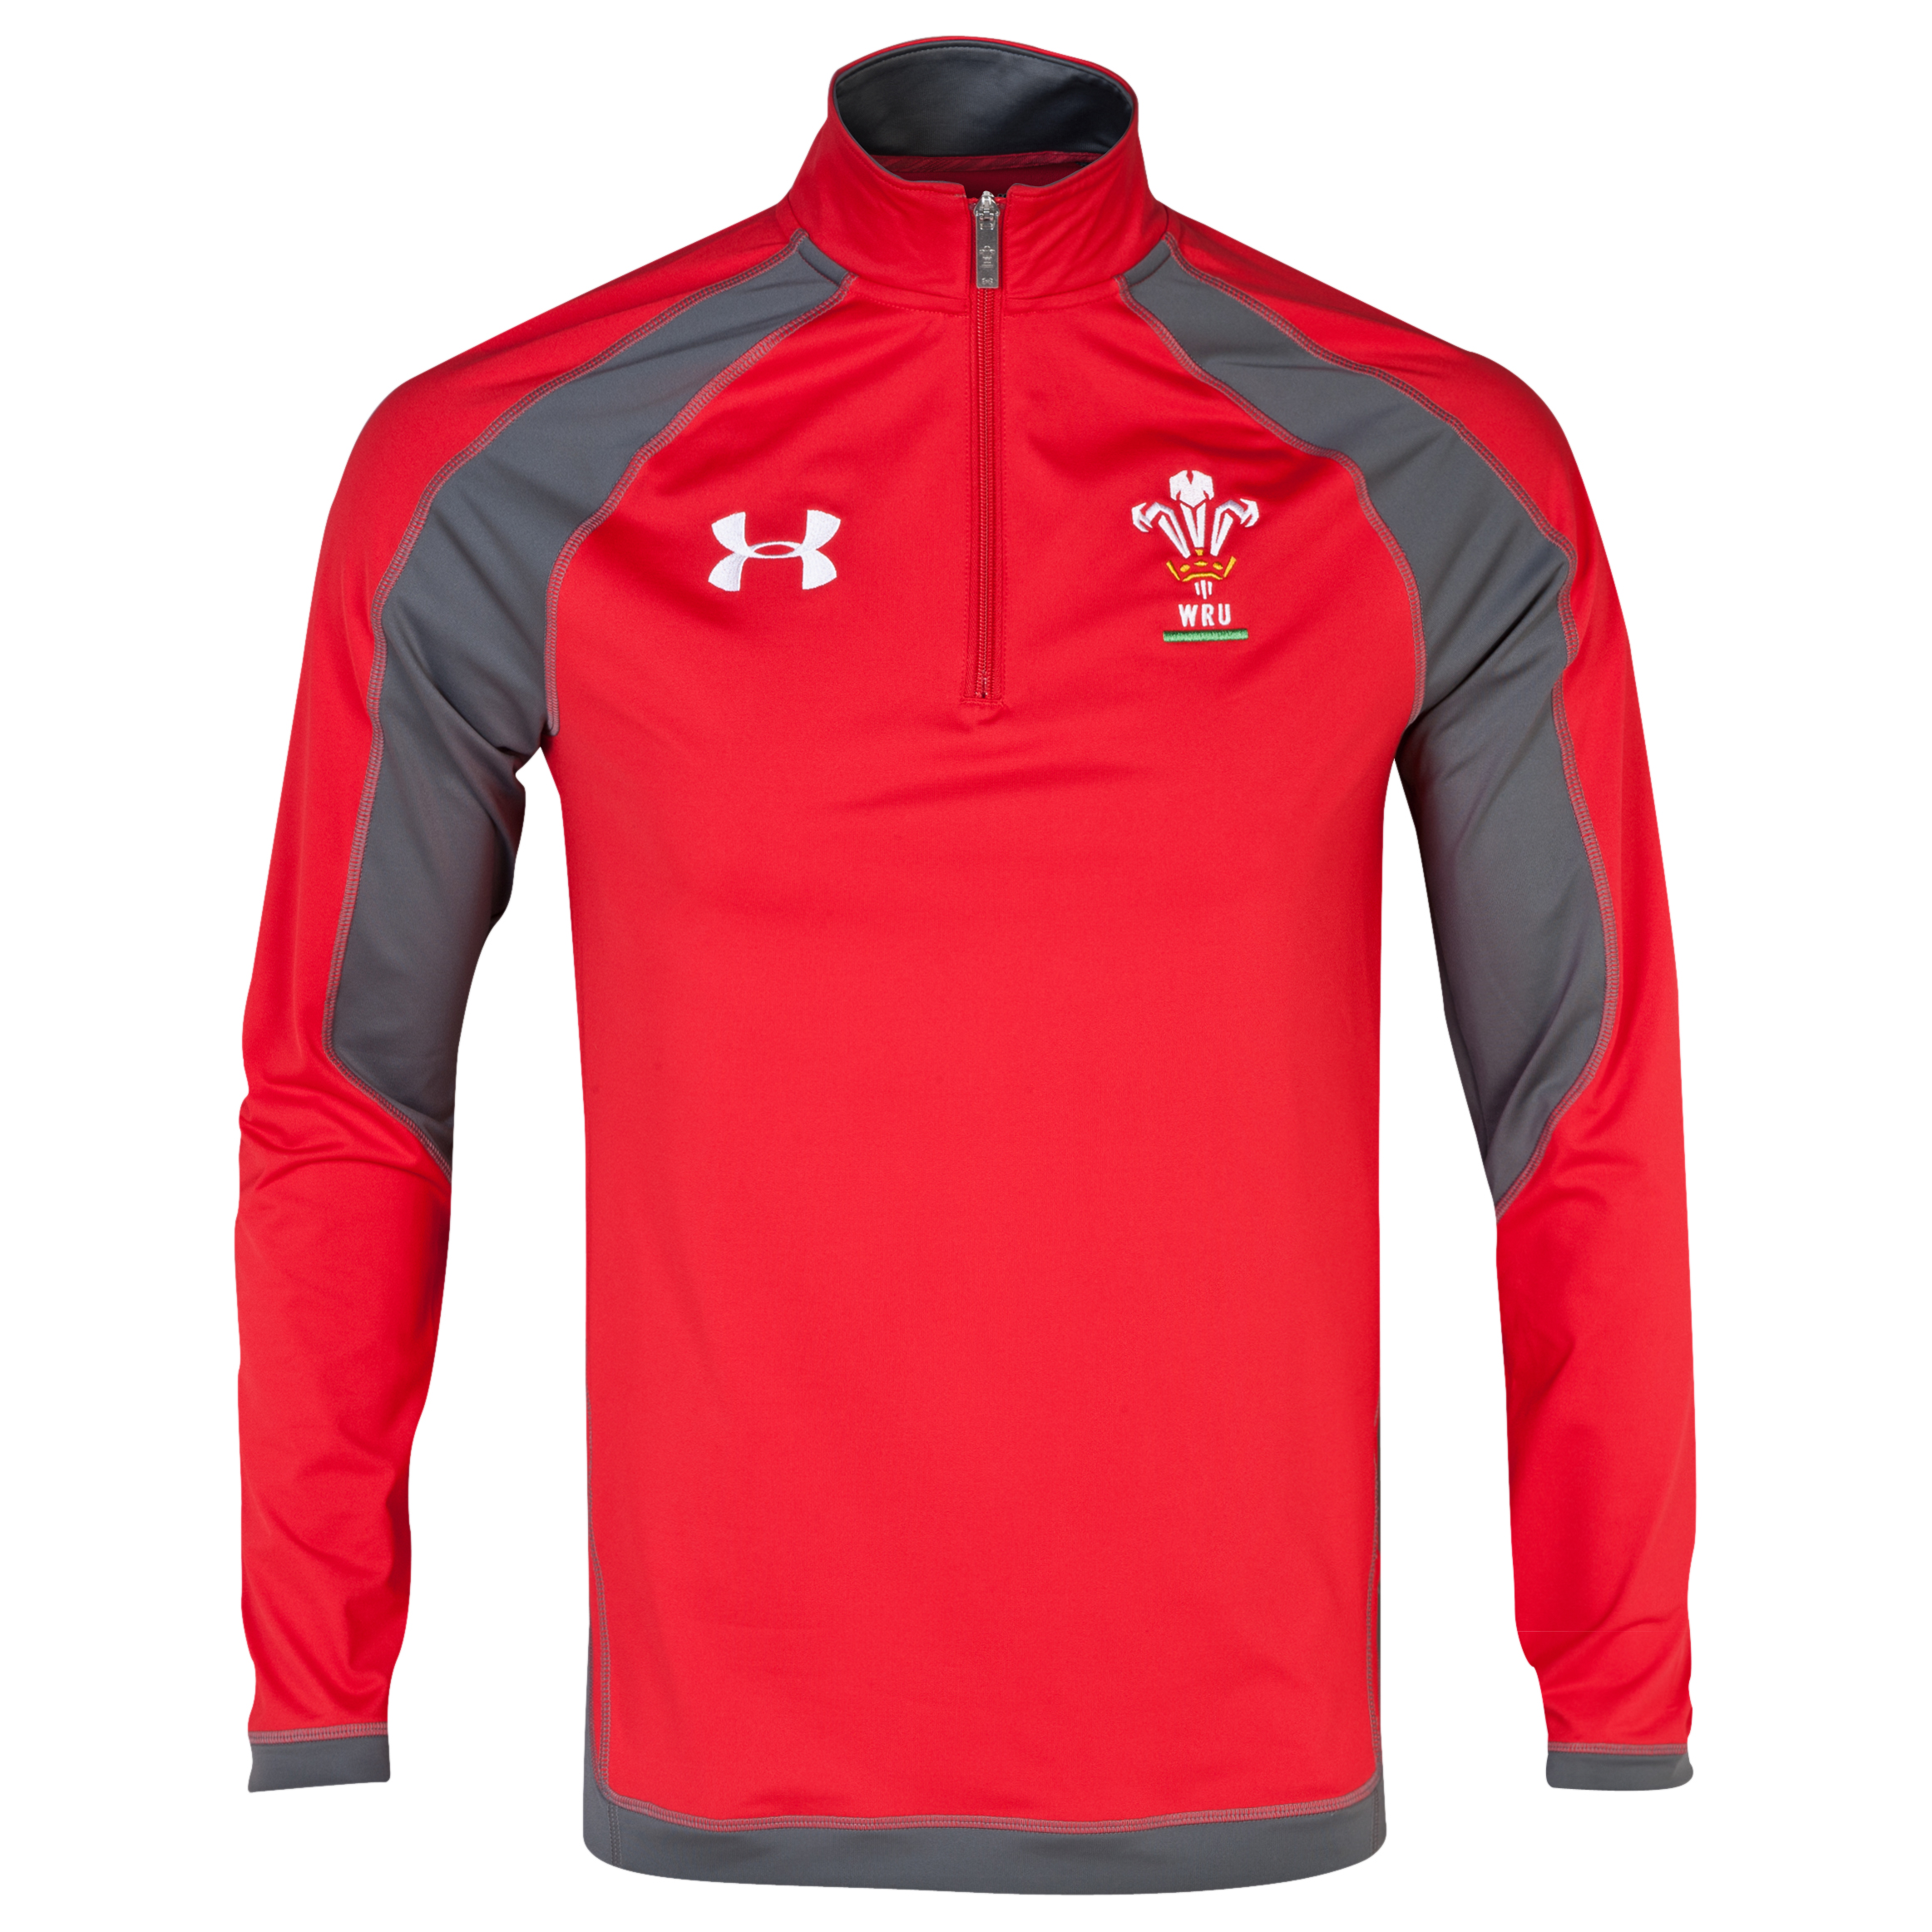 Wales Rugby Union Combine 1/4 Zip Top - Red/Graphite